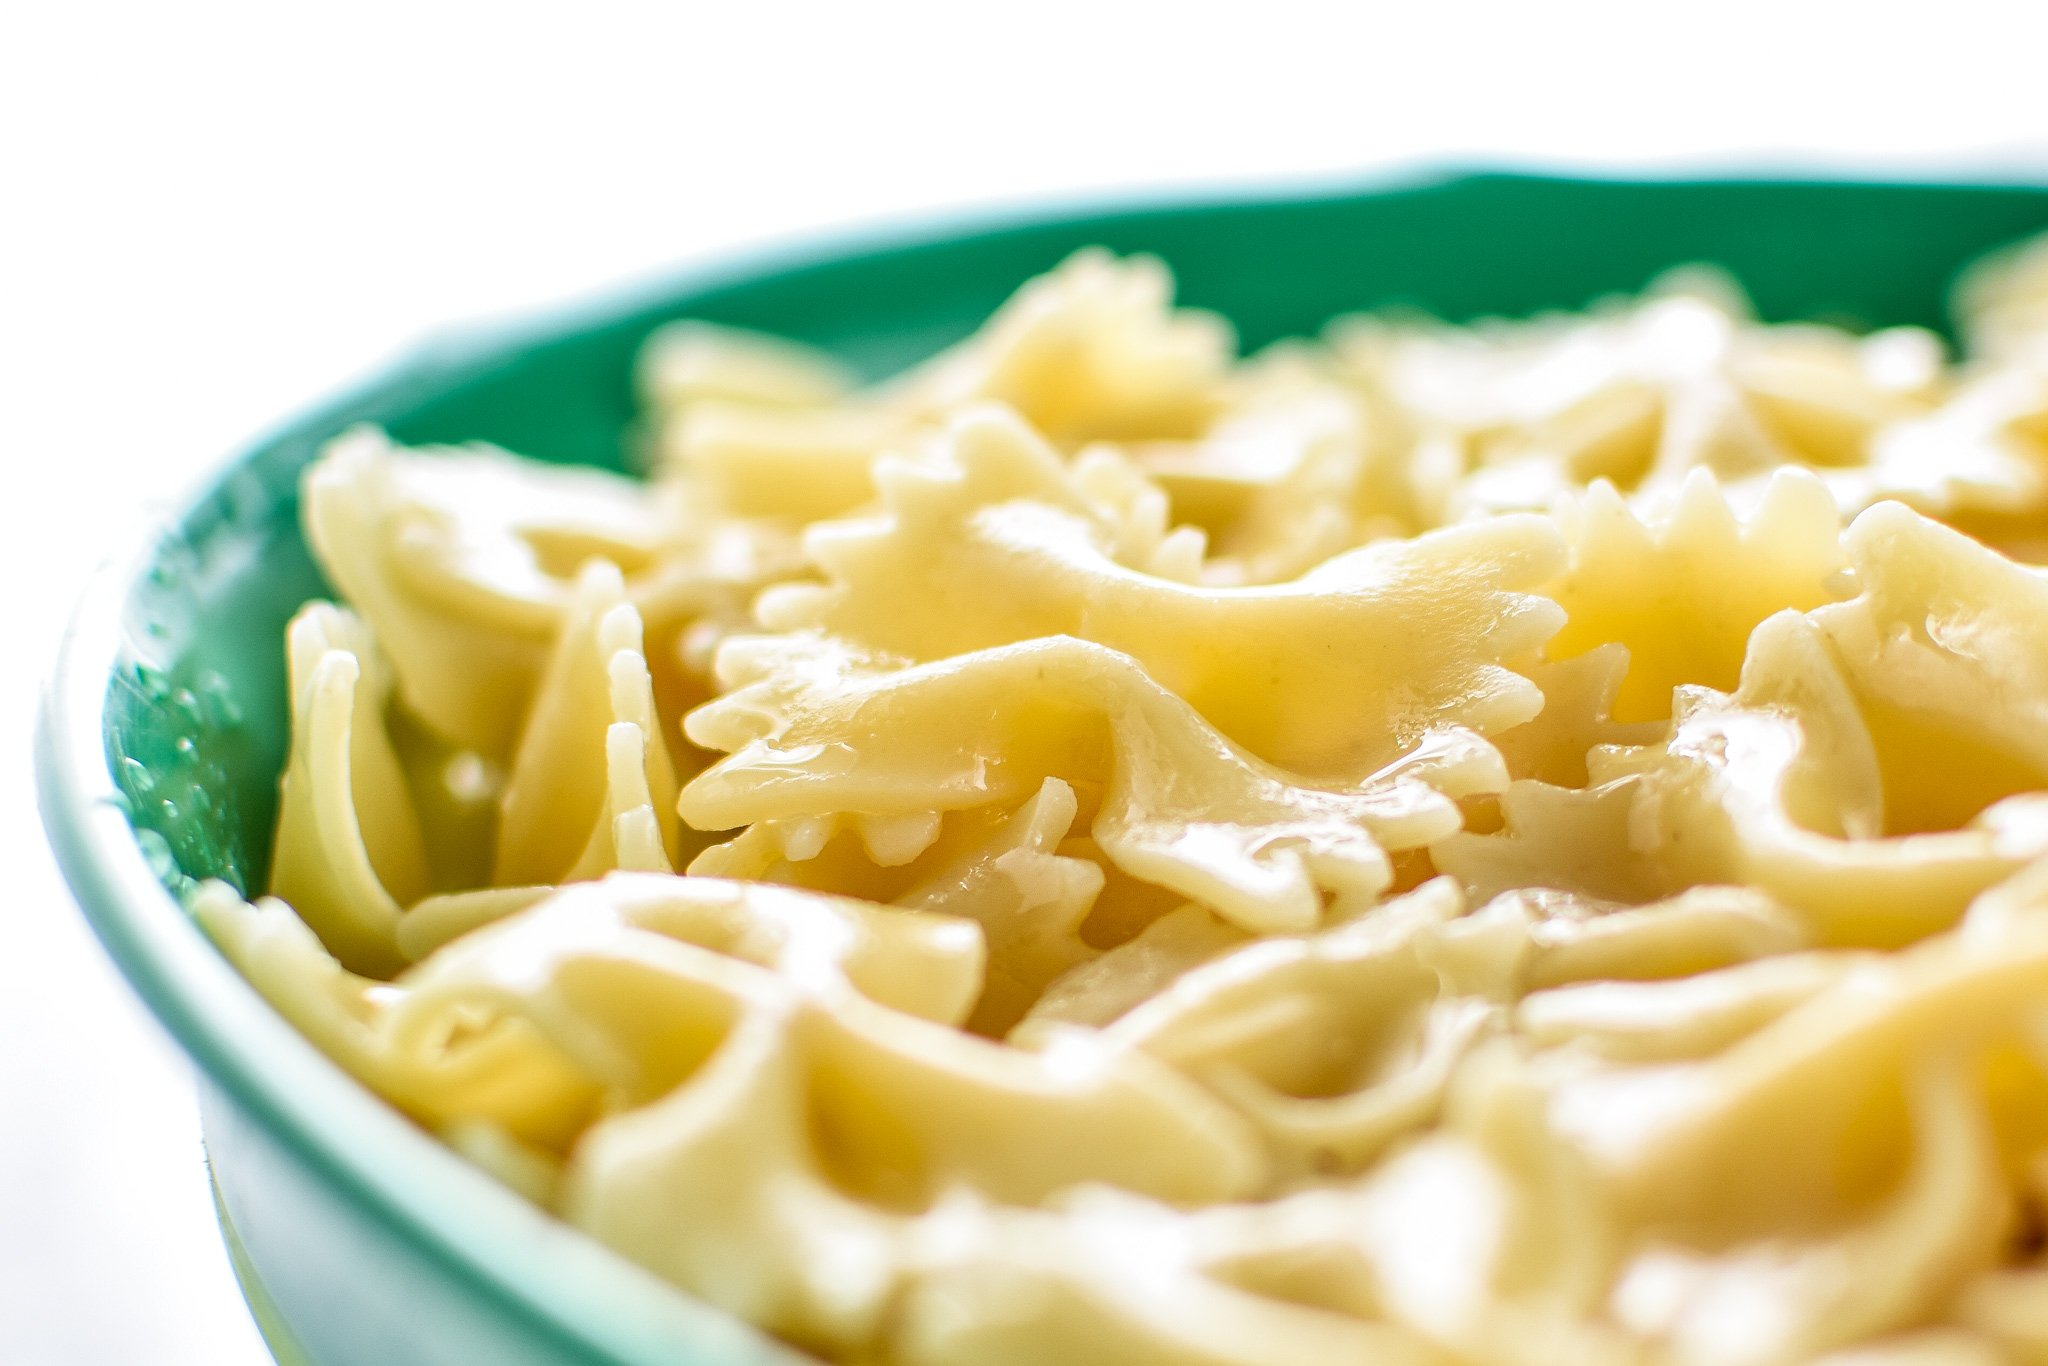 Cooked pasta ready for Incredibly Easy Pesto Pasta Salad - just 6 simple ingredients for the best make-ahead side dish! - ProjectMealPlan.com